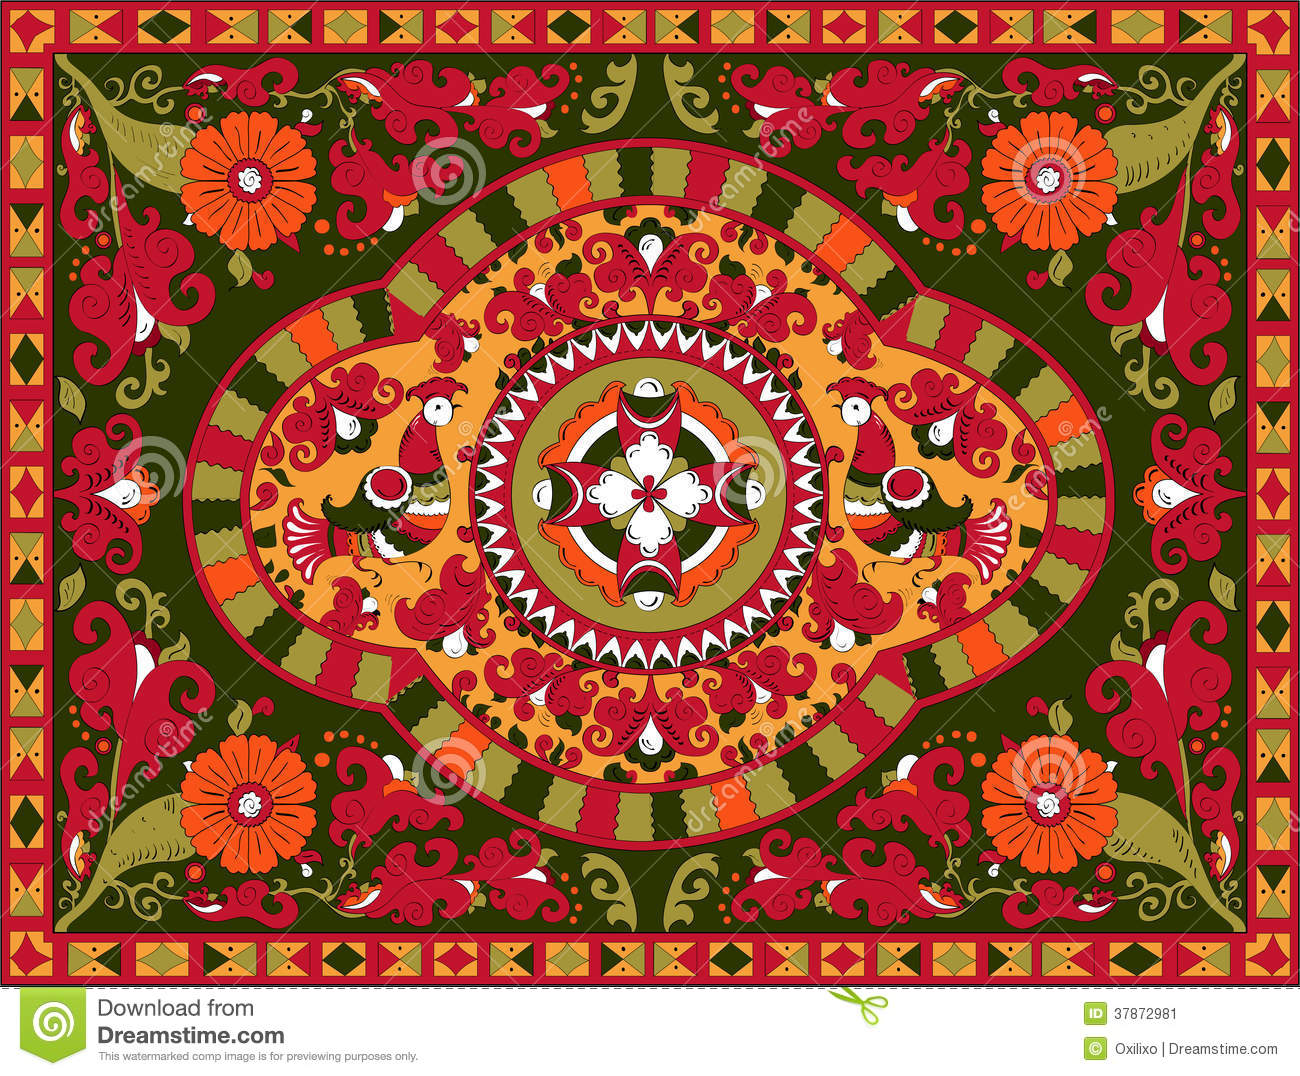 russian traditional or nt birds and flower stock image russian traditional or nt birds and flower